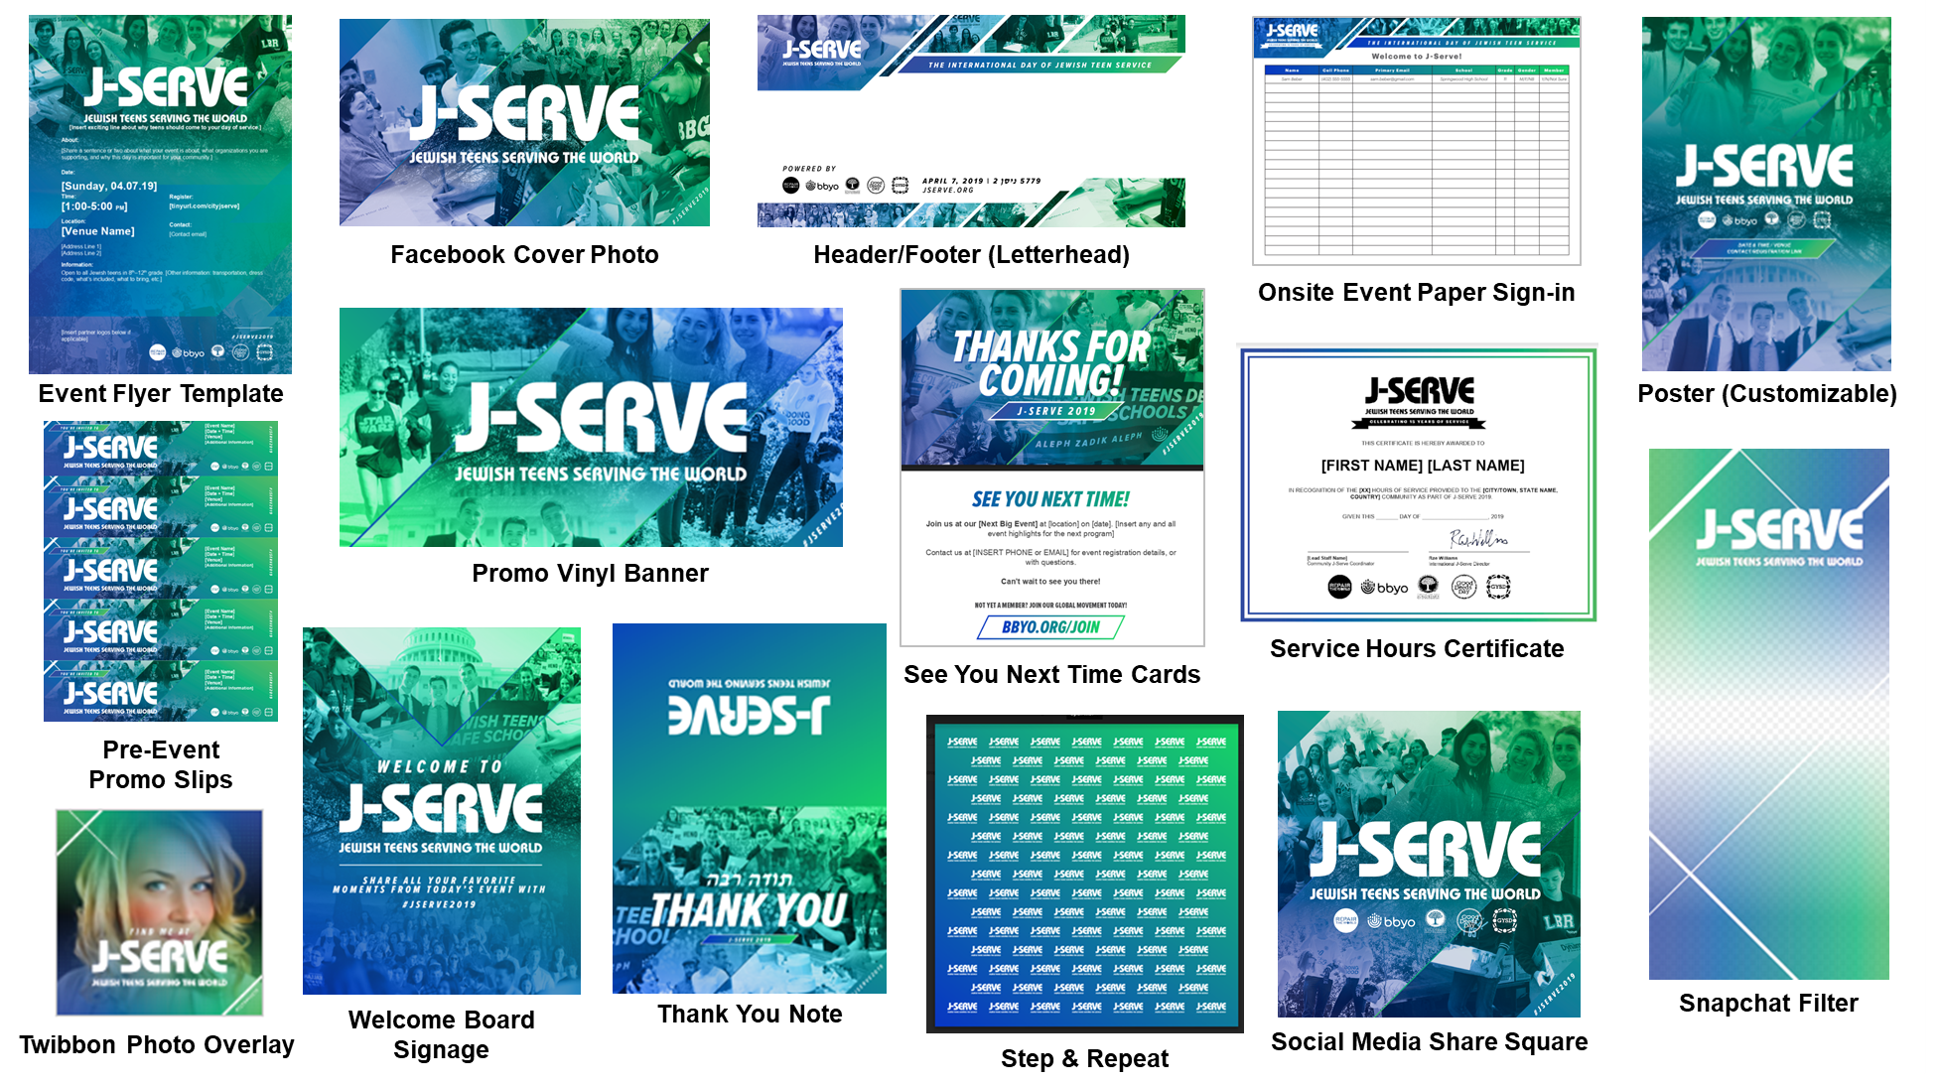 **NEW**   Full #JSERVE2019 Branding & Marketing Resources Suite